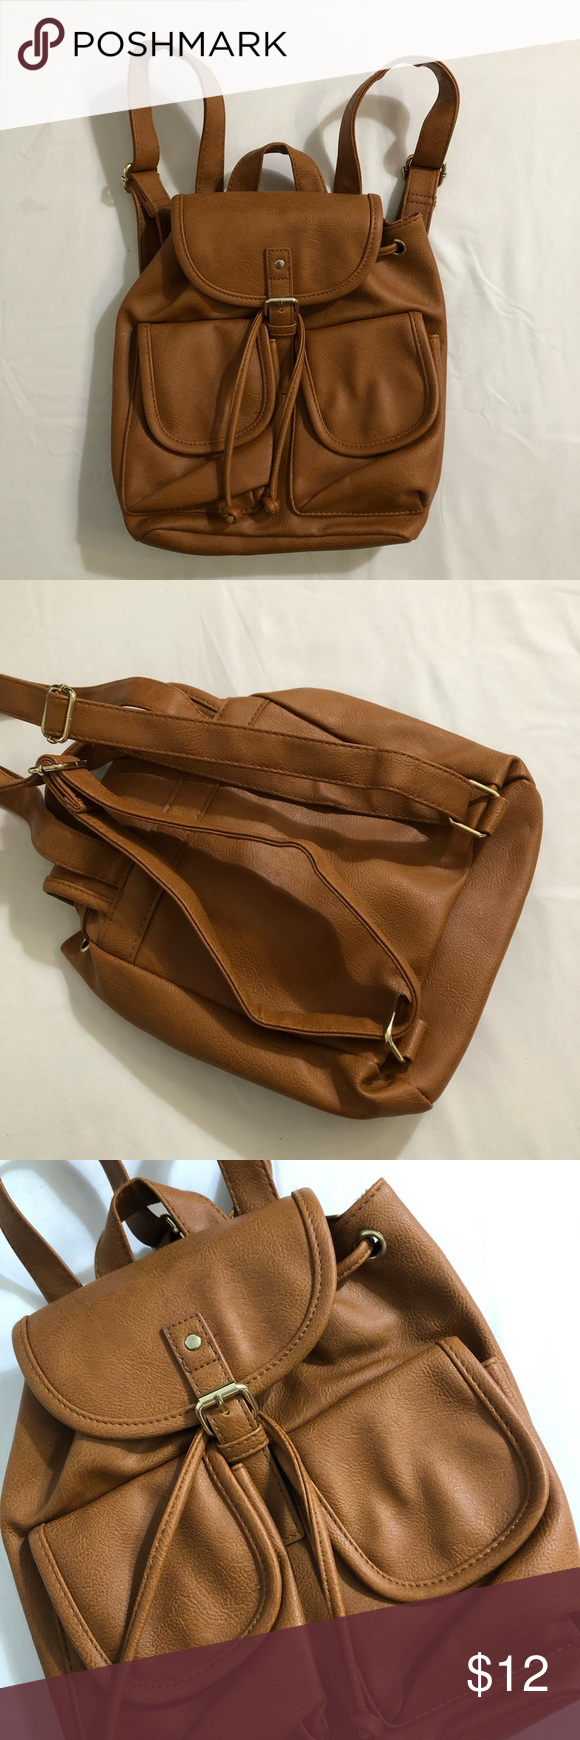 6ac55ab8ecd Tan leather backpack Never used. No brand Bags Backpacks | My Posh ...